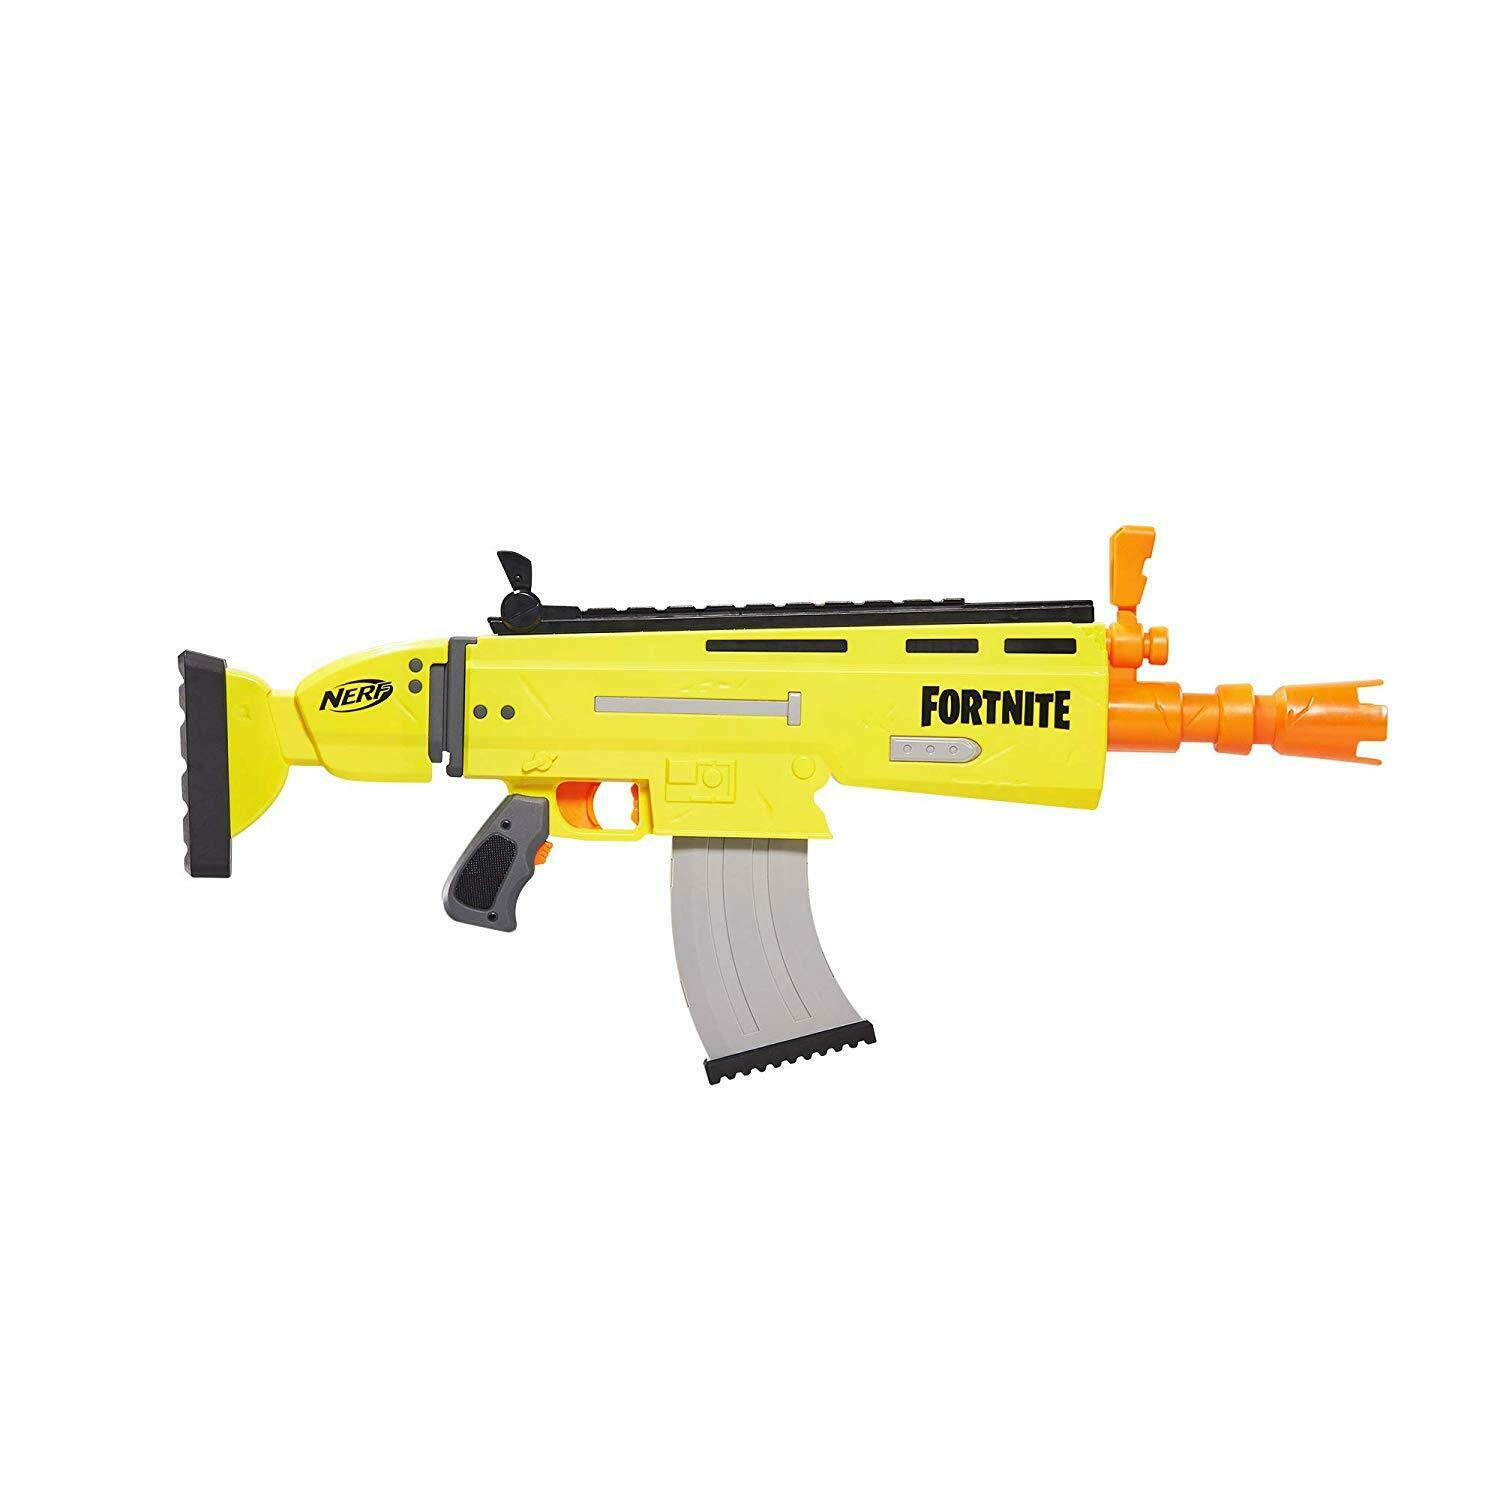 Nerf Guns For Boys Nerf Guns For Girls Fortnite Nerf Guns Ar